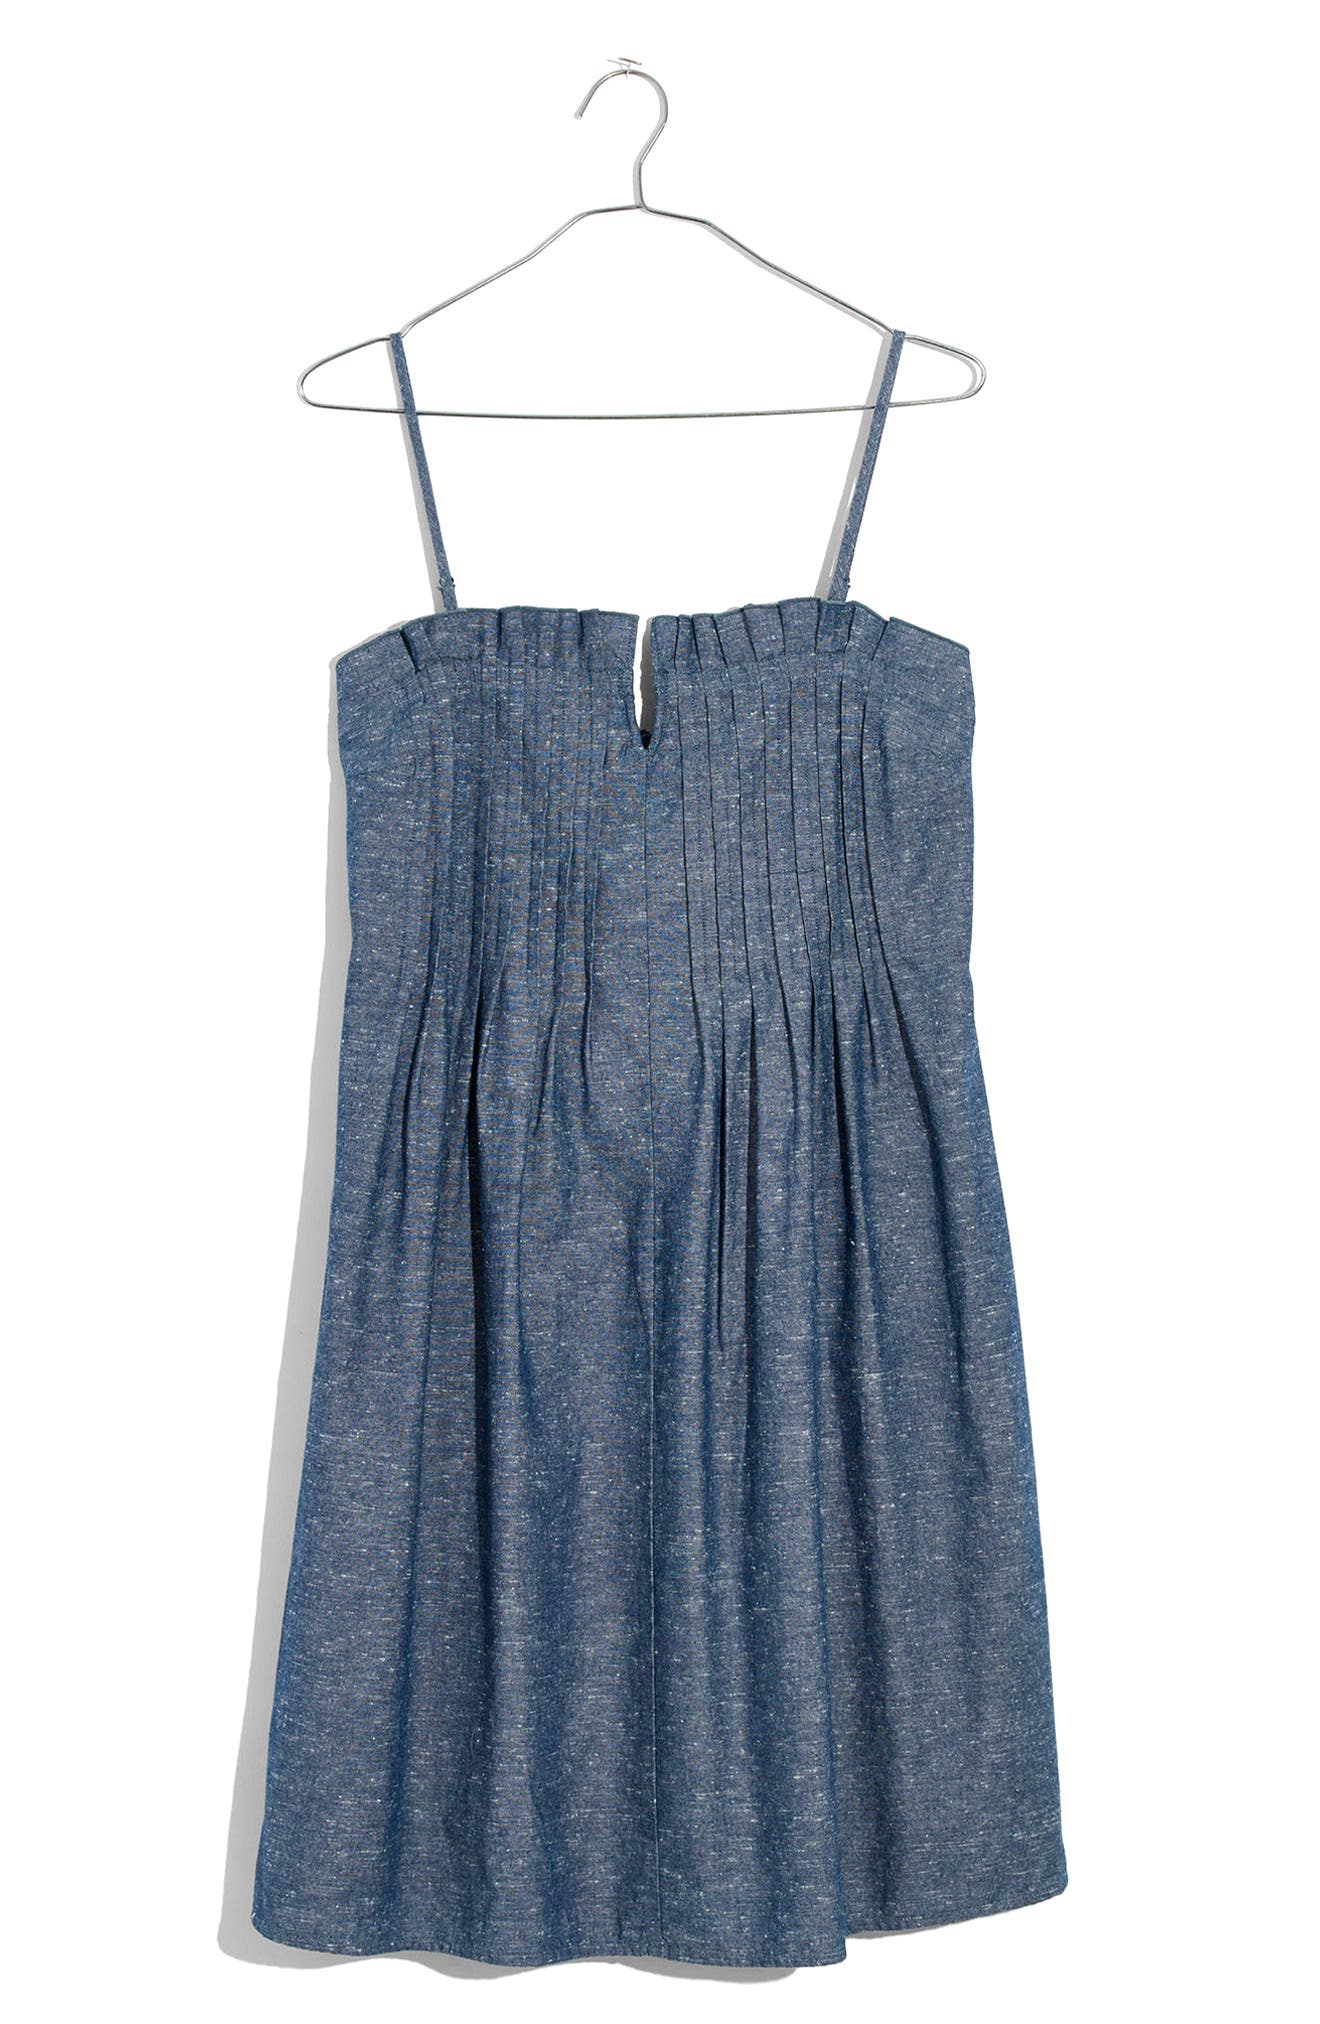 Pintuck Denim Camisole Dress,                             Alternate thumbnail 3, color,